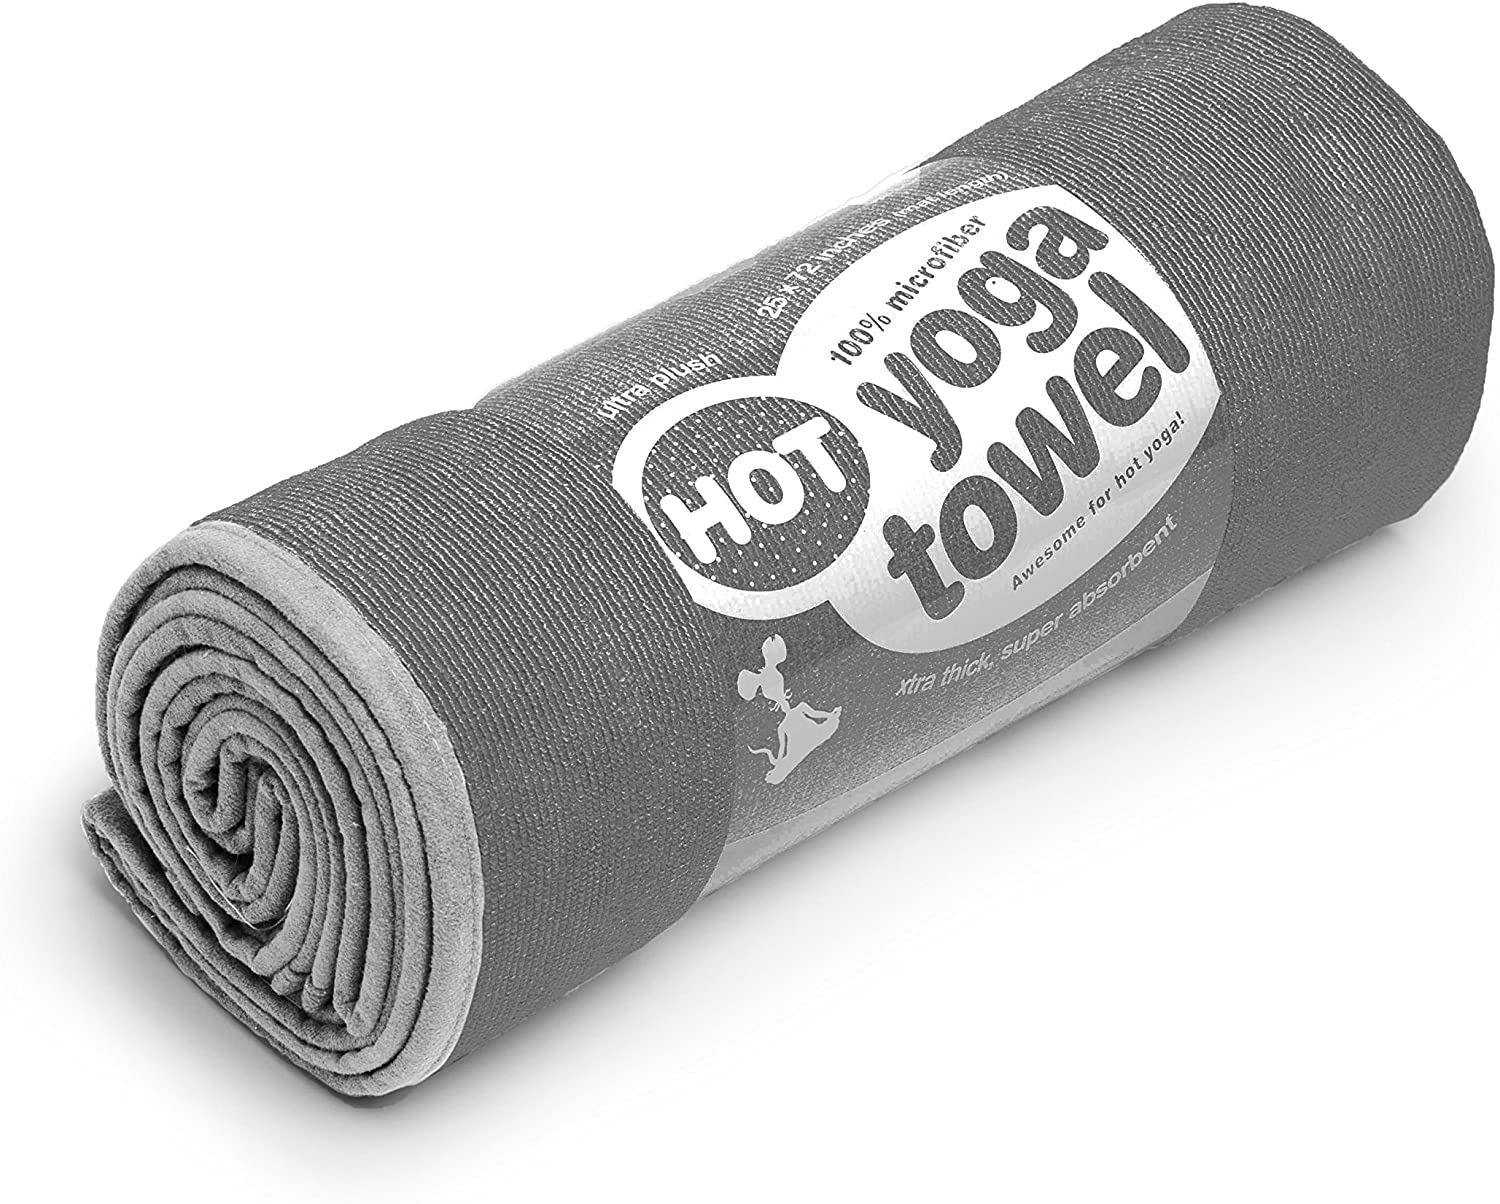 YogaRat HOT YOGA Bombing free shipping TOWEL: 100% durable thick super-absorbent Max 40% OFF mic